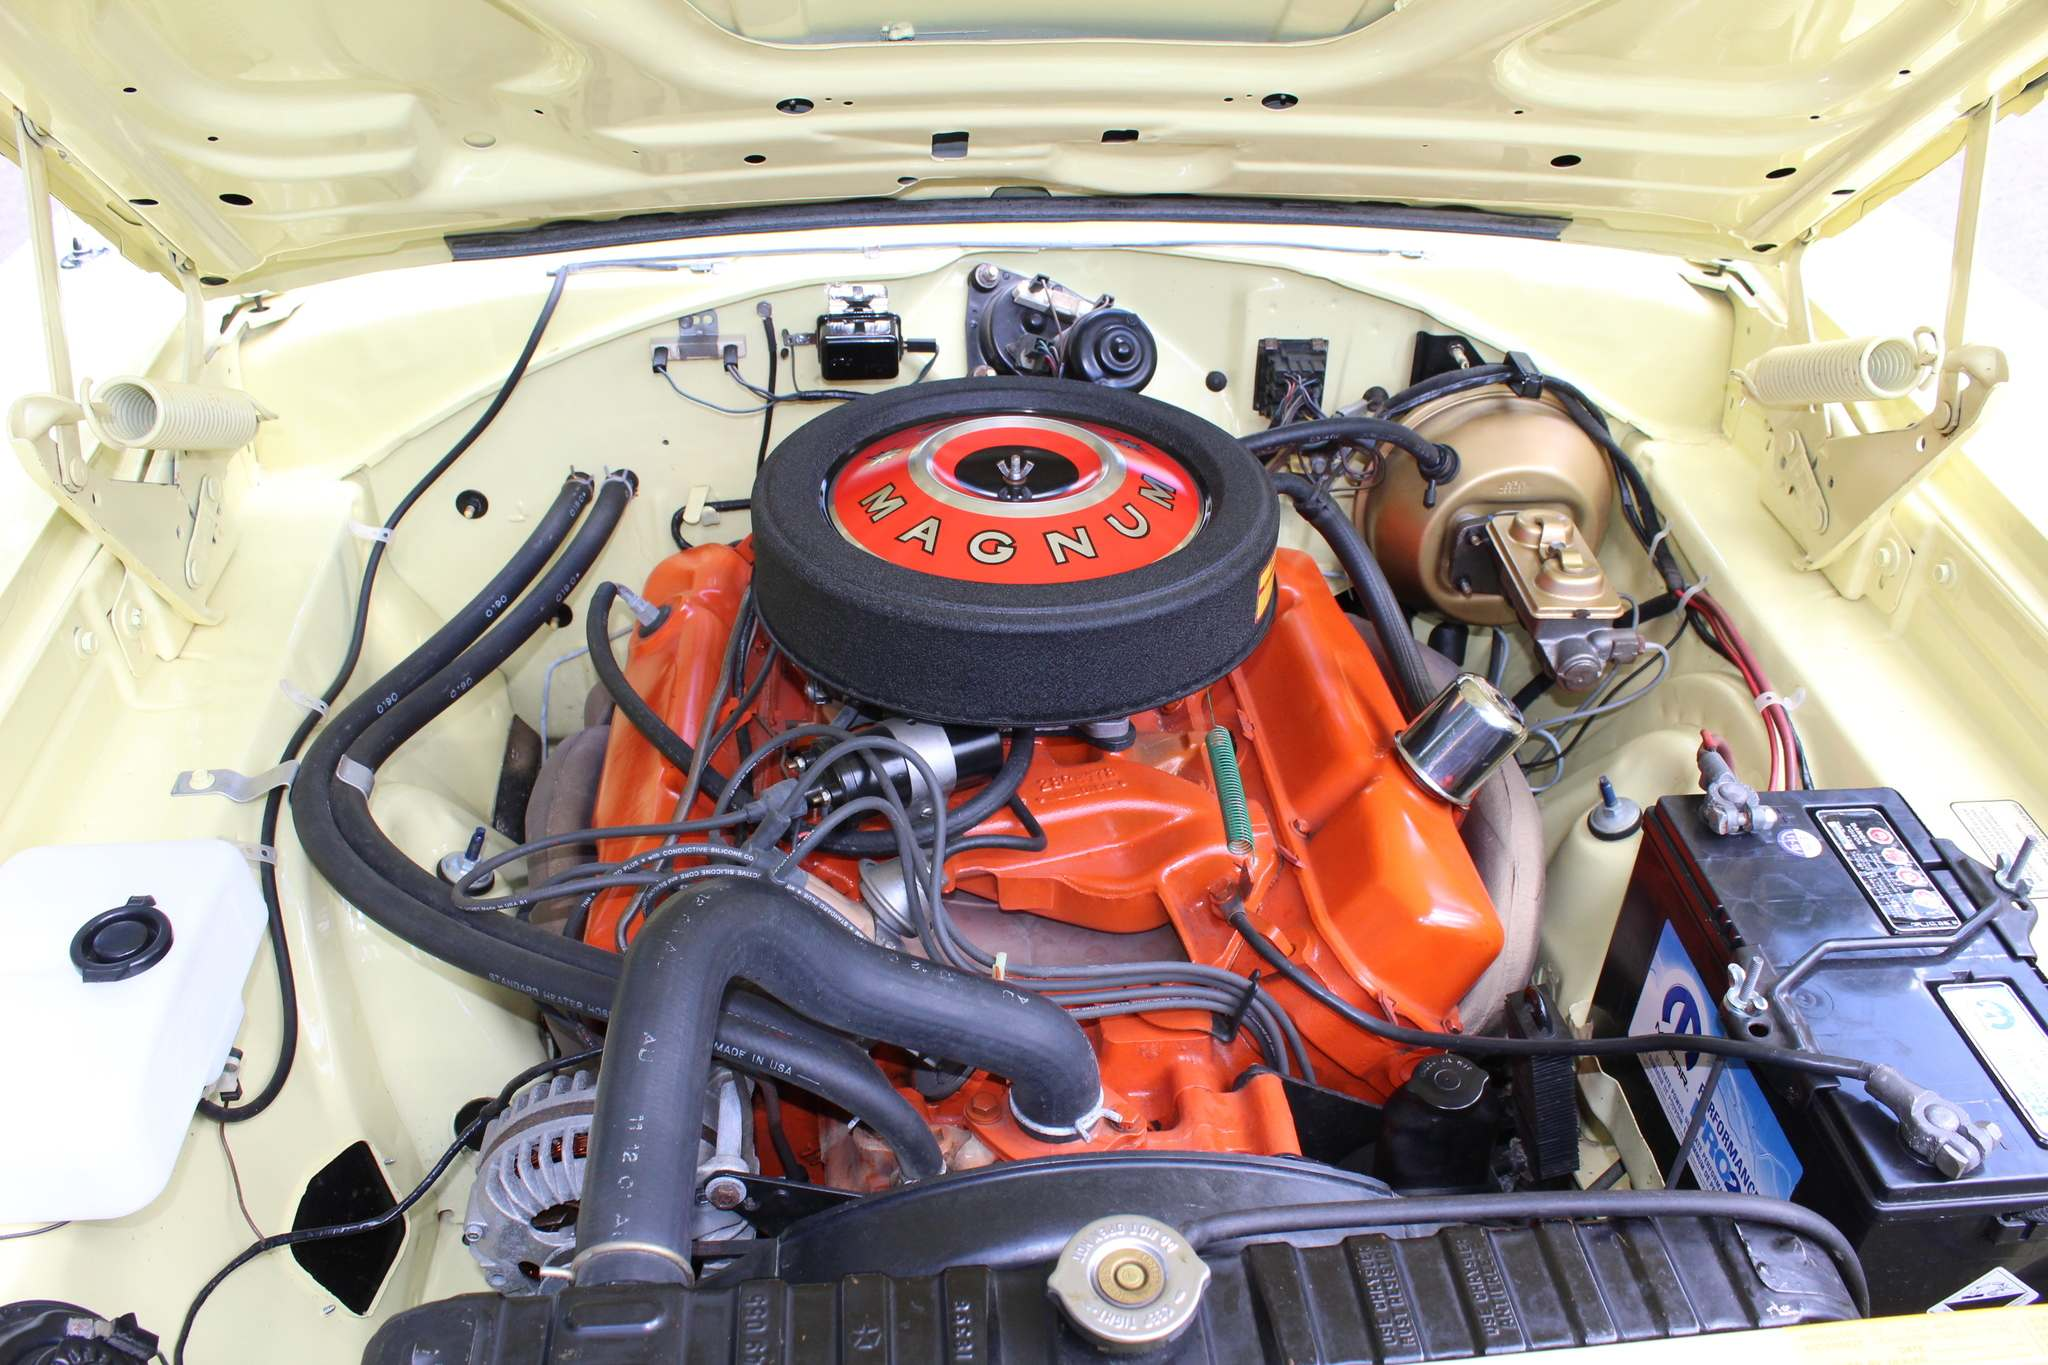 The 440-cubic-inch Magnum V-8 engine was completely rebuilt by Ken Murray at Ken's Kustom Auto Machine in Winnipeg and fitted with a Pertronix Ignitor electronic ignition module.